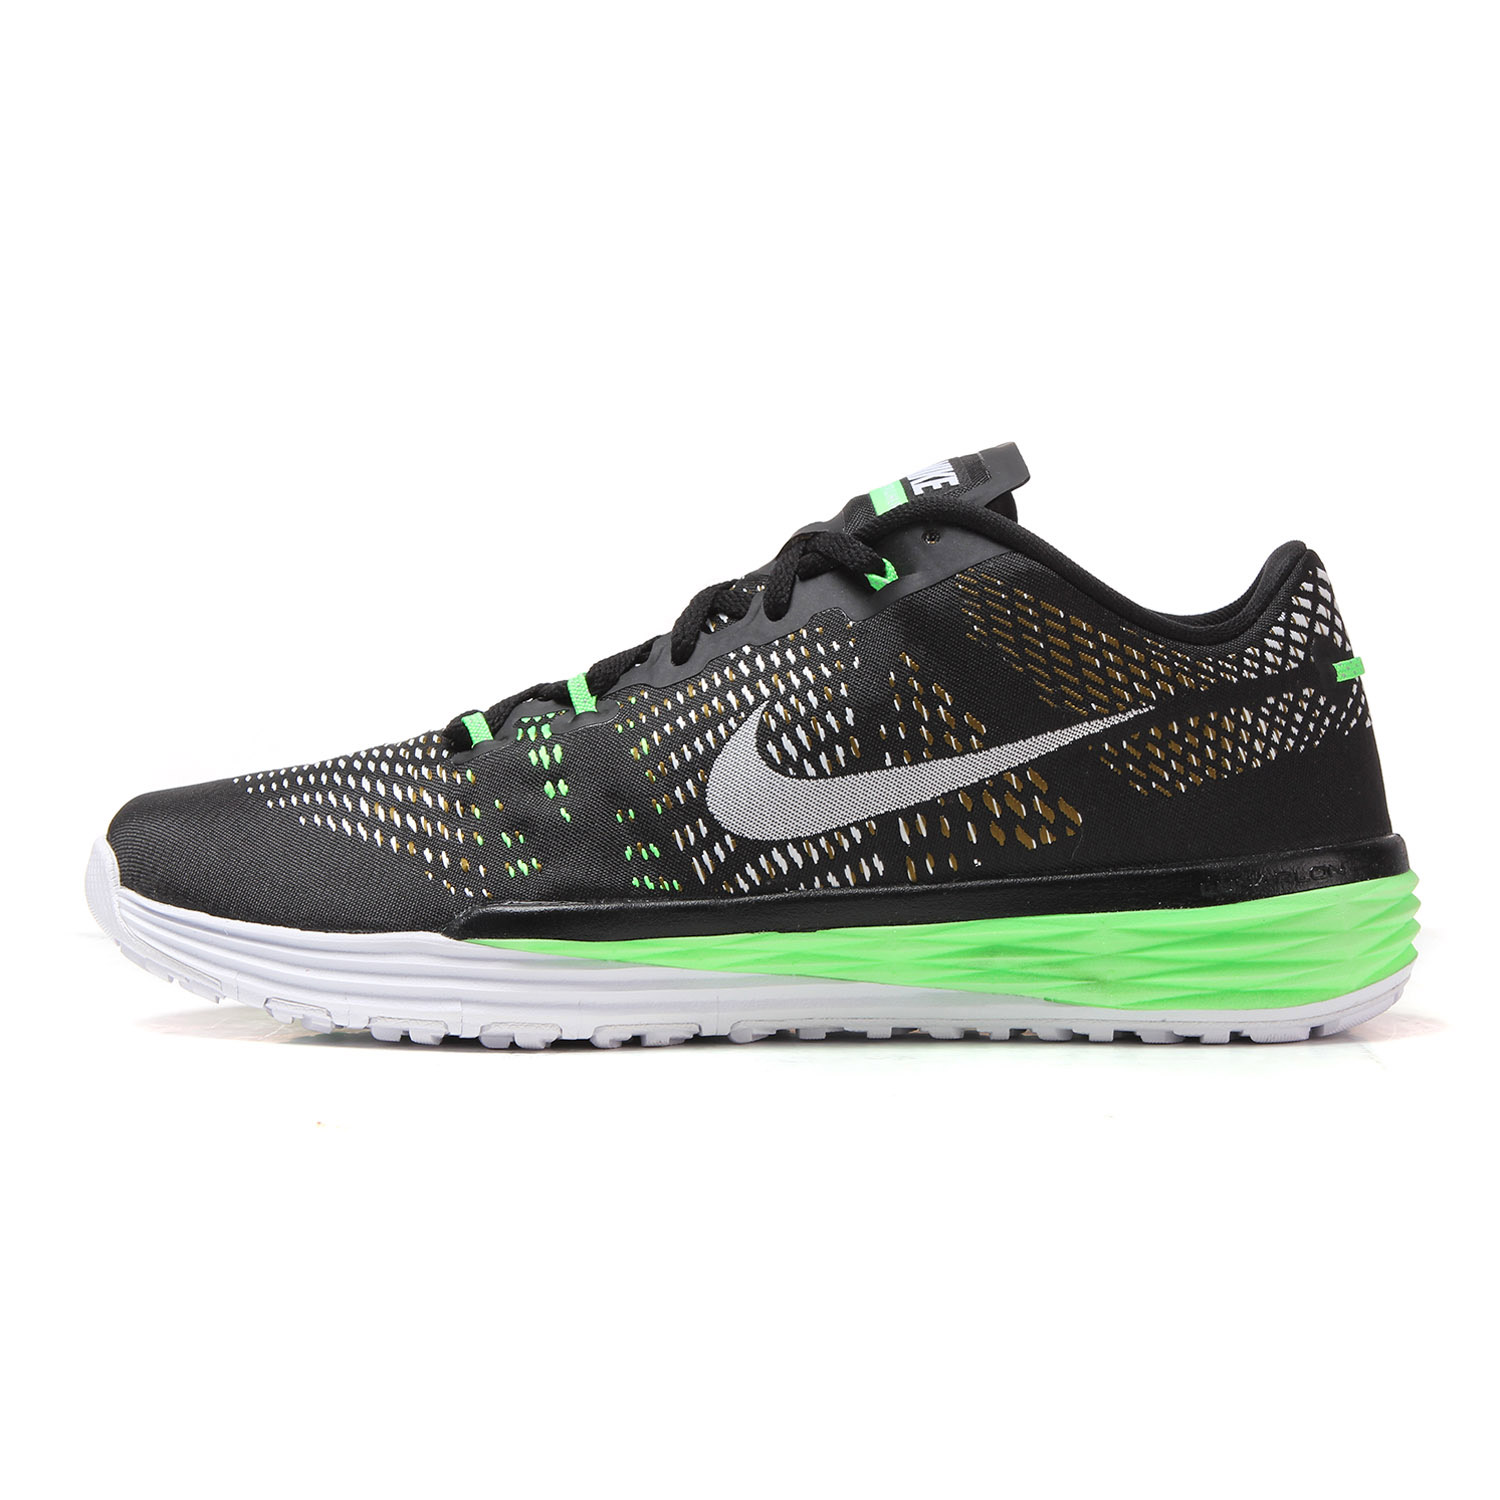 big sale 472e1 c9f37 Get Quotations · Nike men s nike lunar lunar running shoes 2016 new sports  shoes 803879-010